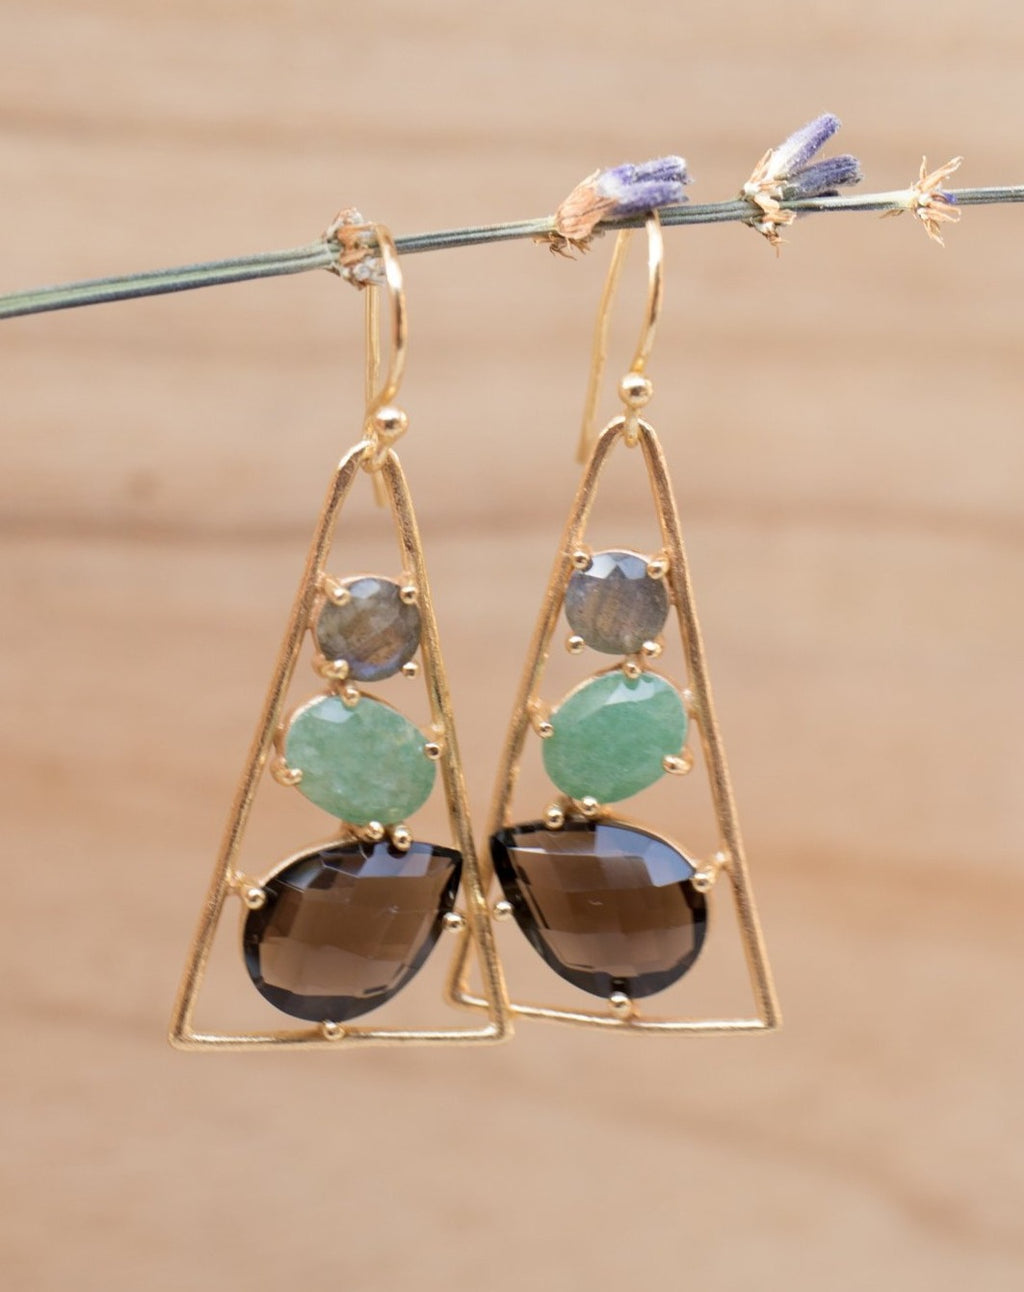 Cleo Earrings * Labradorite, Aventurine & Smoky Quartz * Gold Plated 18k * BJE098